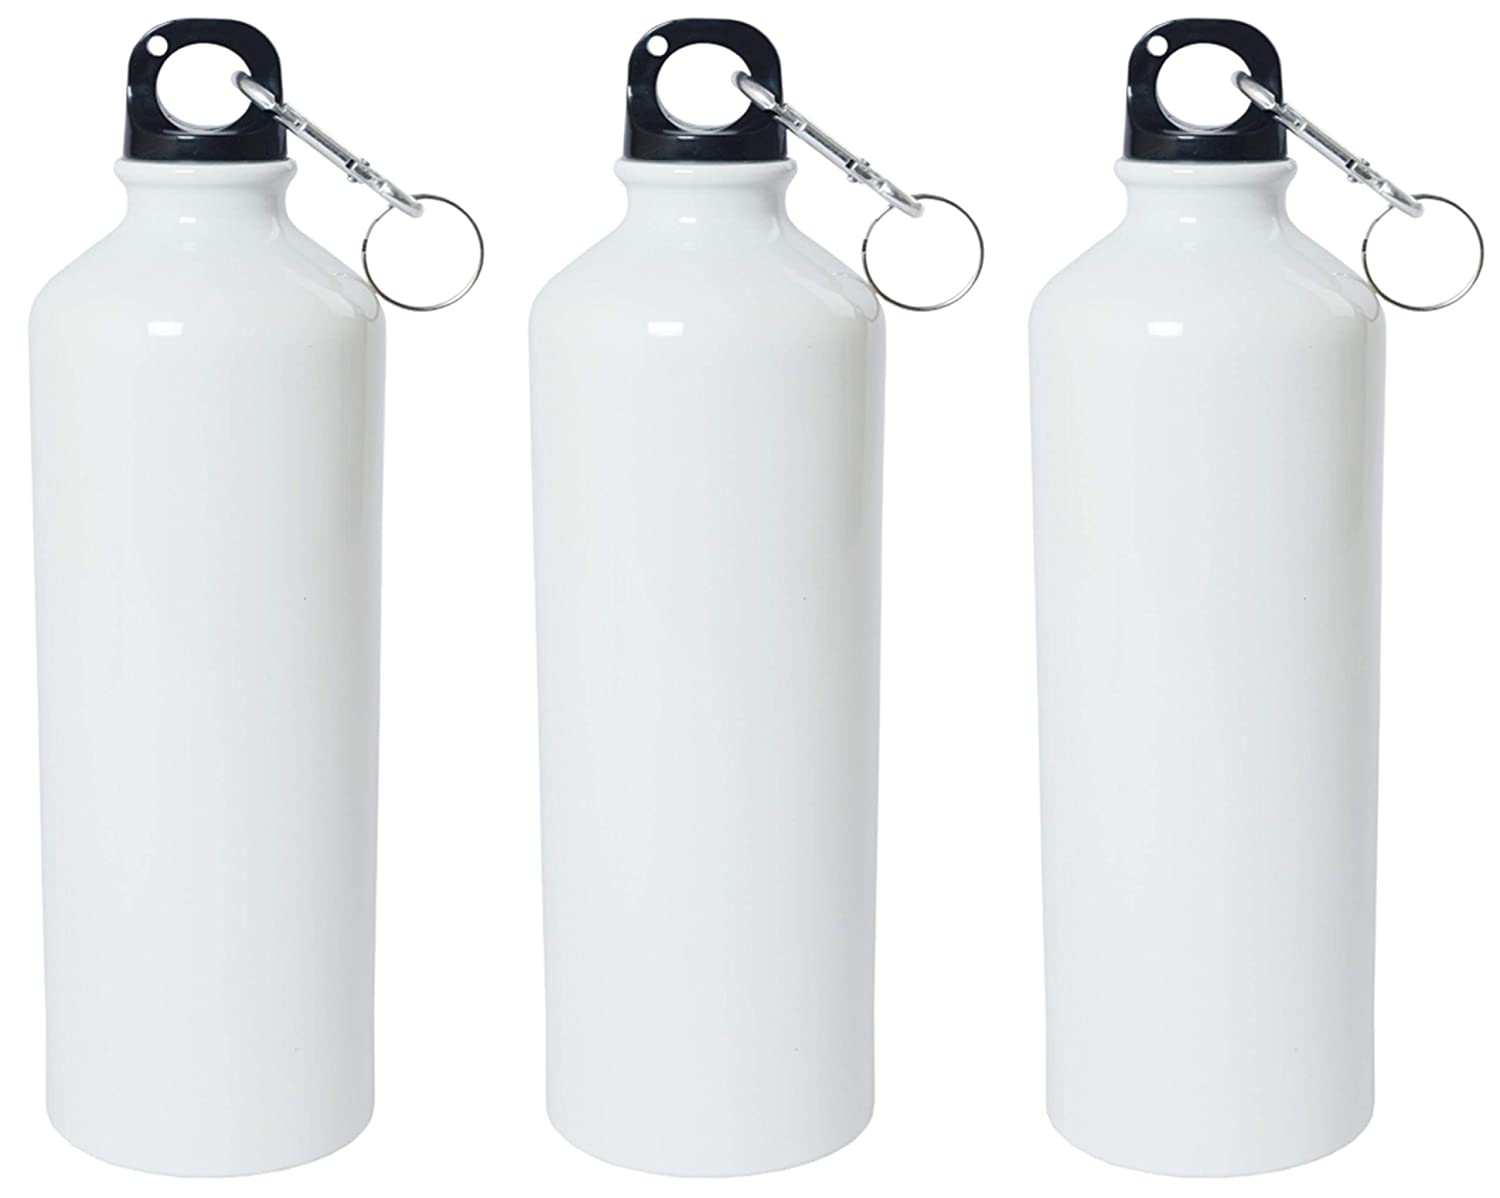 61bd3ebb1d Crazy Sutra Classic Sipper Plain Water Bottle/Sipper White - 600Ml  [SipperWhite3pc]: Amazon.in: Home & Kitchen